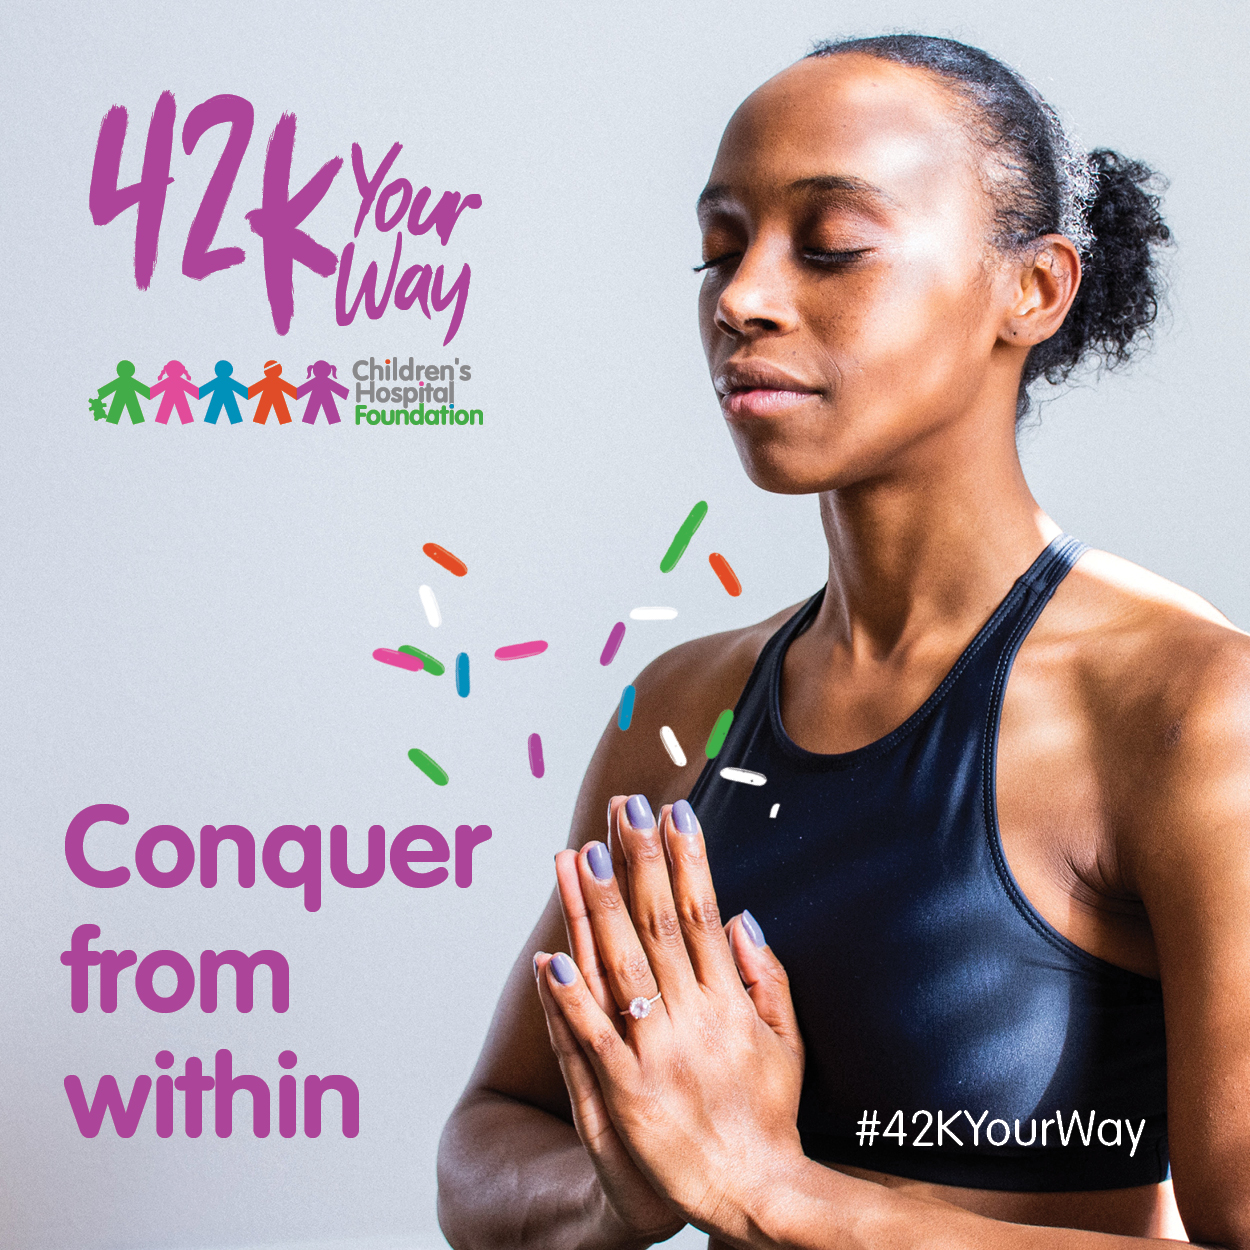 42k Your Way - Conquer